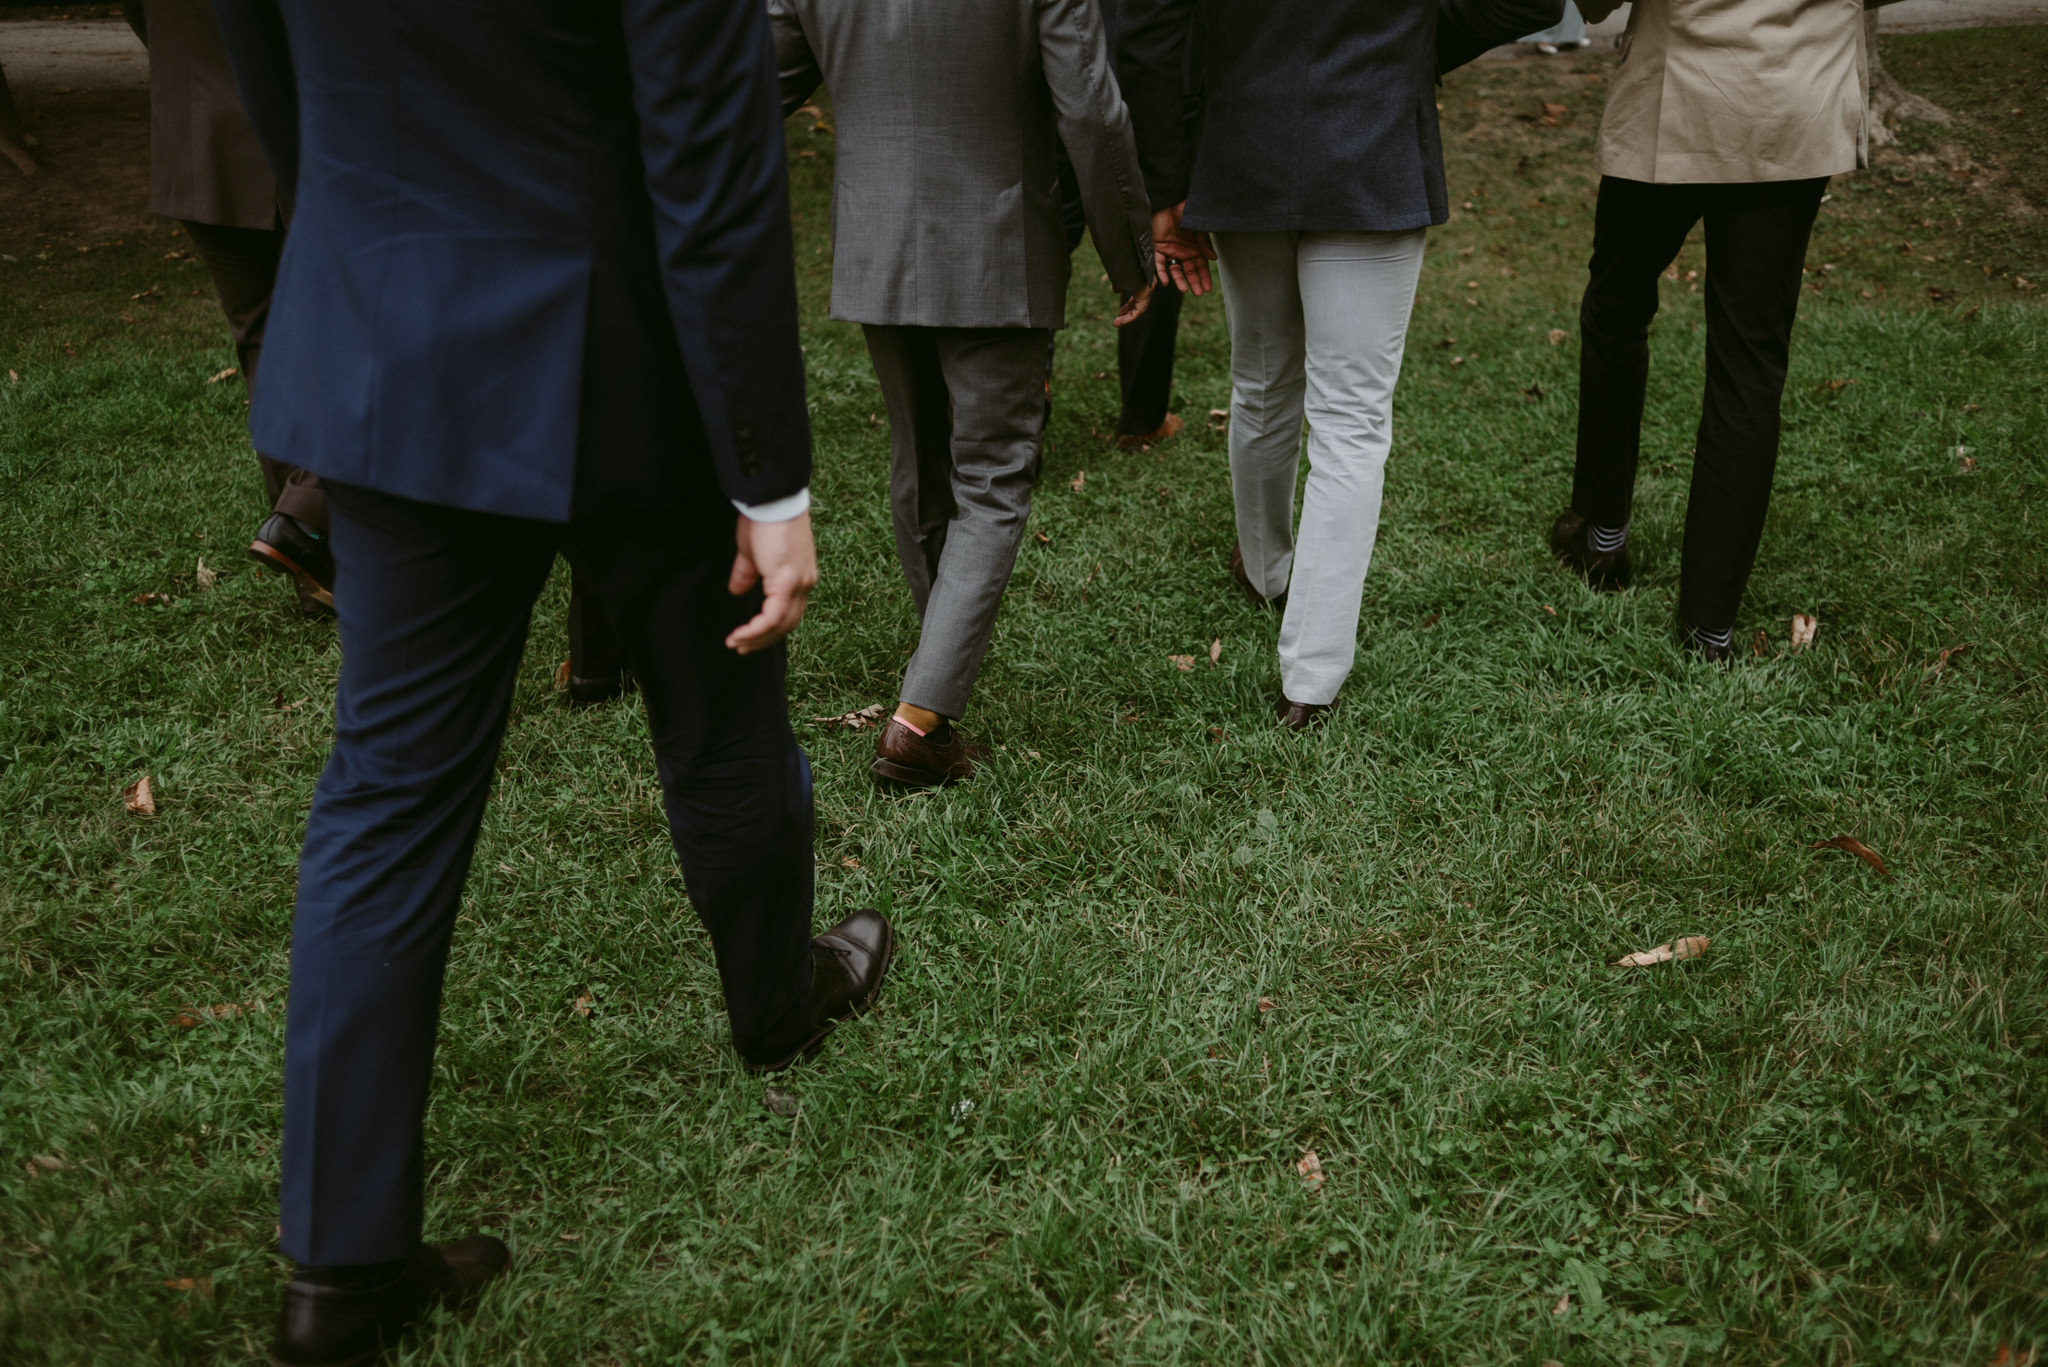 close up of groomsmen in suits walking on grass